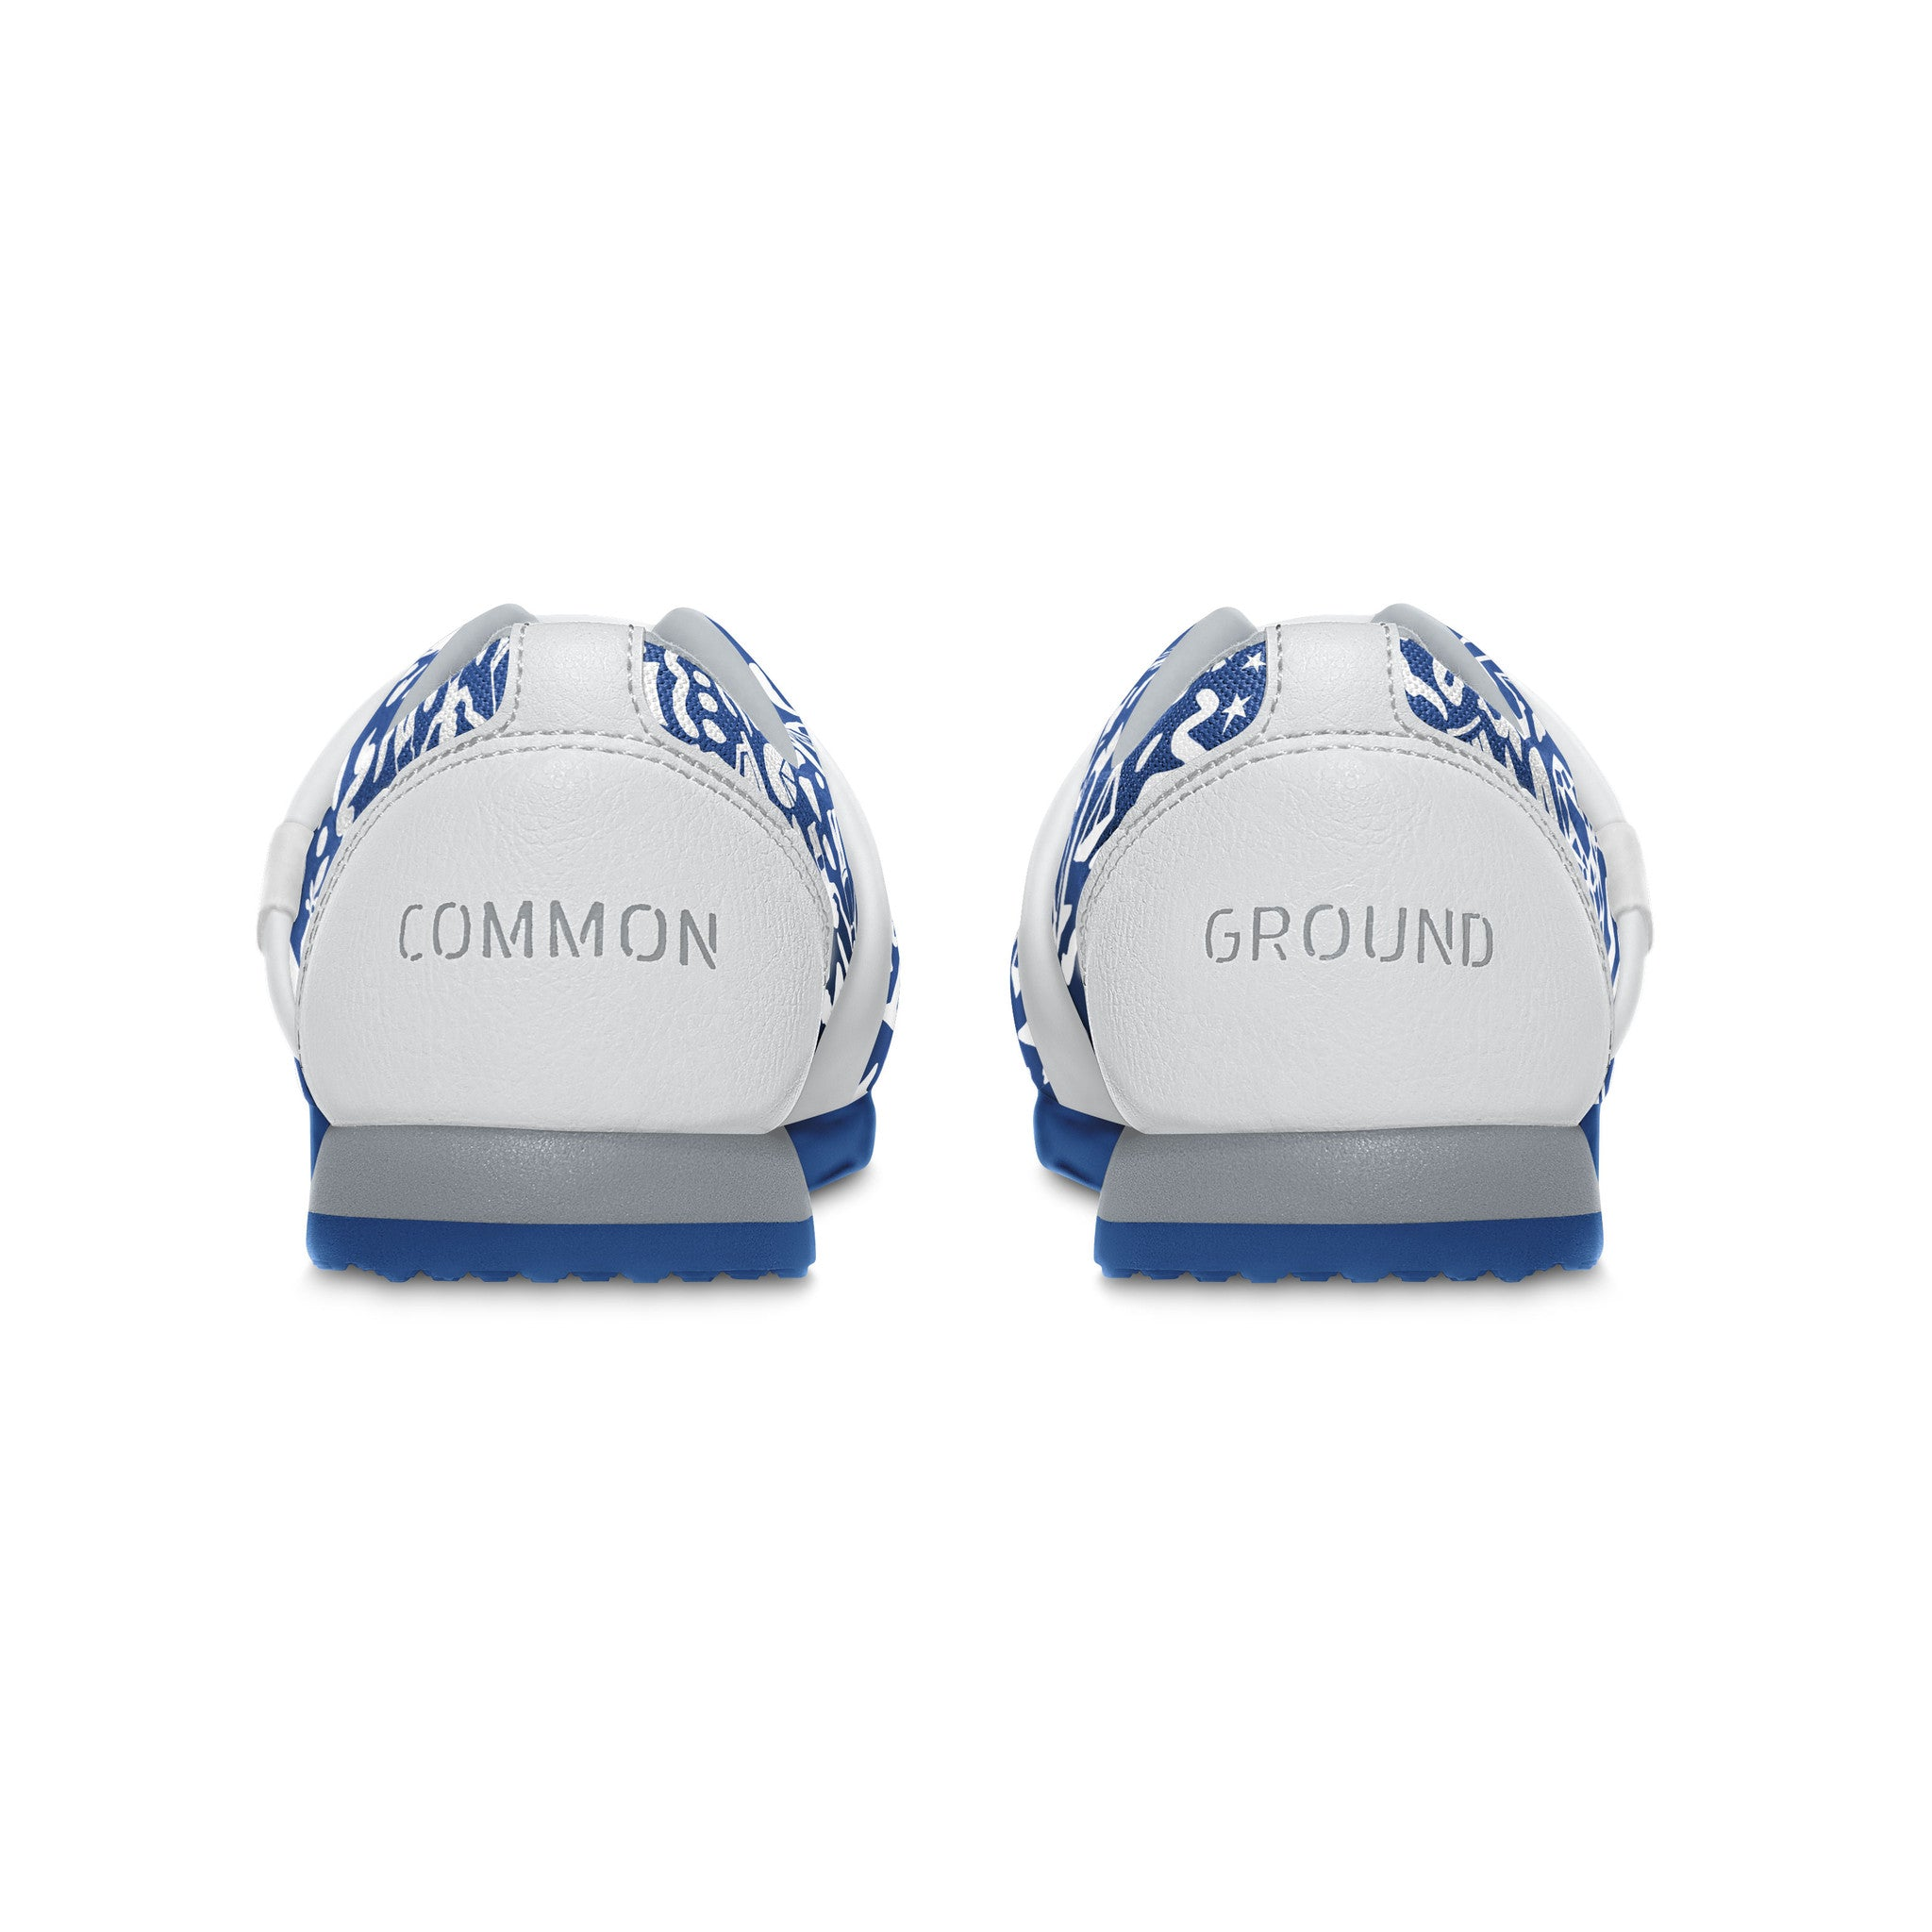 Strong_Blue - Common Ground Footwear Shoes Heel View